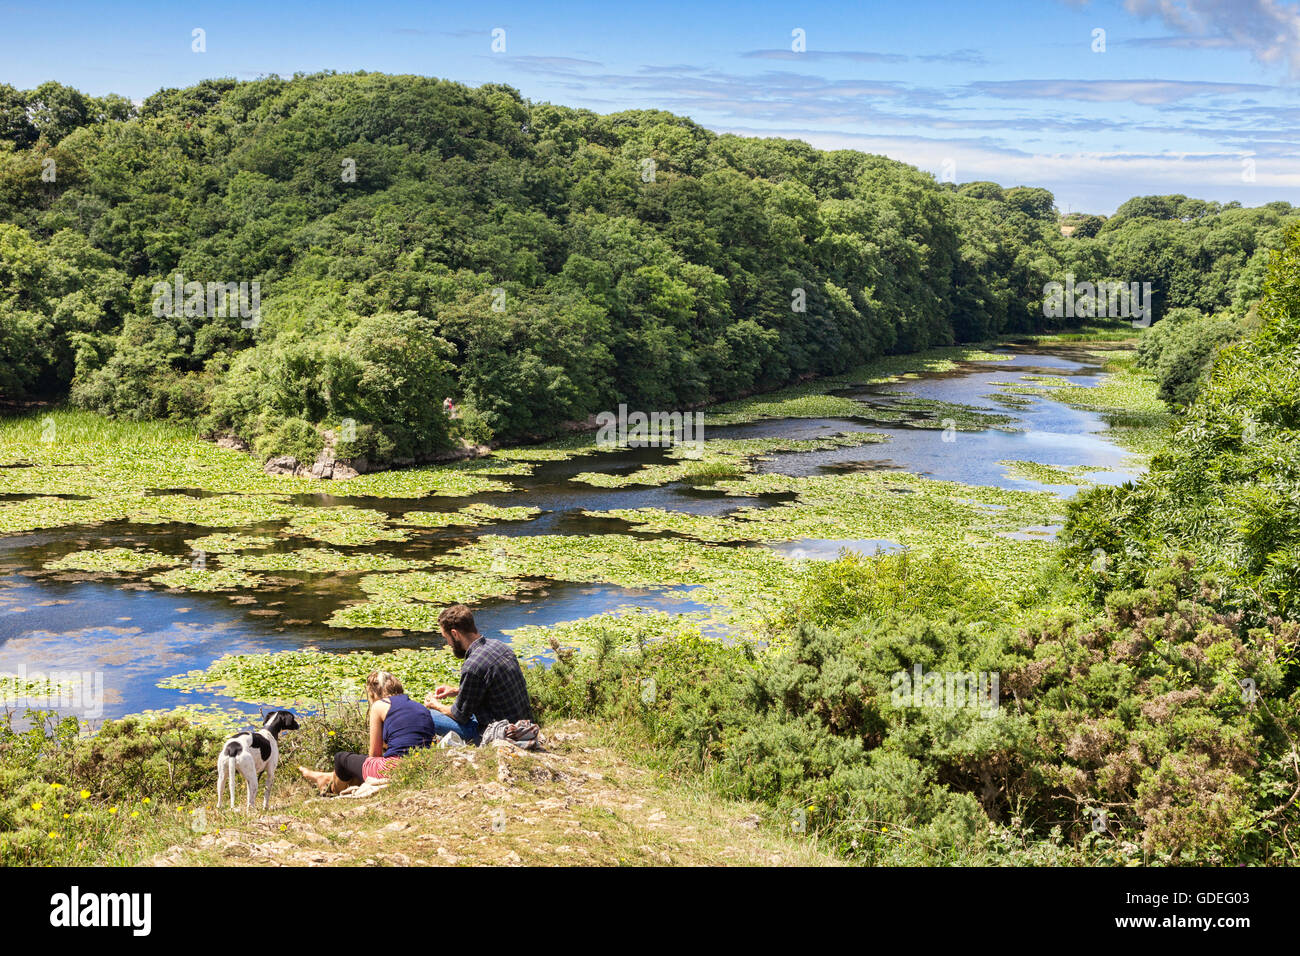 Young couple at Bosherston Lily Ponds, on the Stackpole Estate, Pembrokeshire Coast National Park, Wales, UK - Stock Image